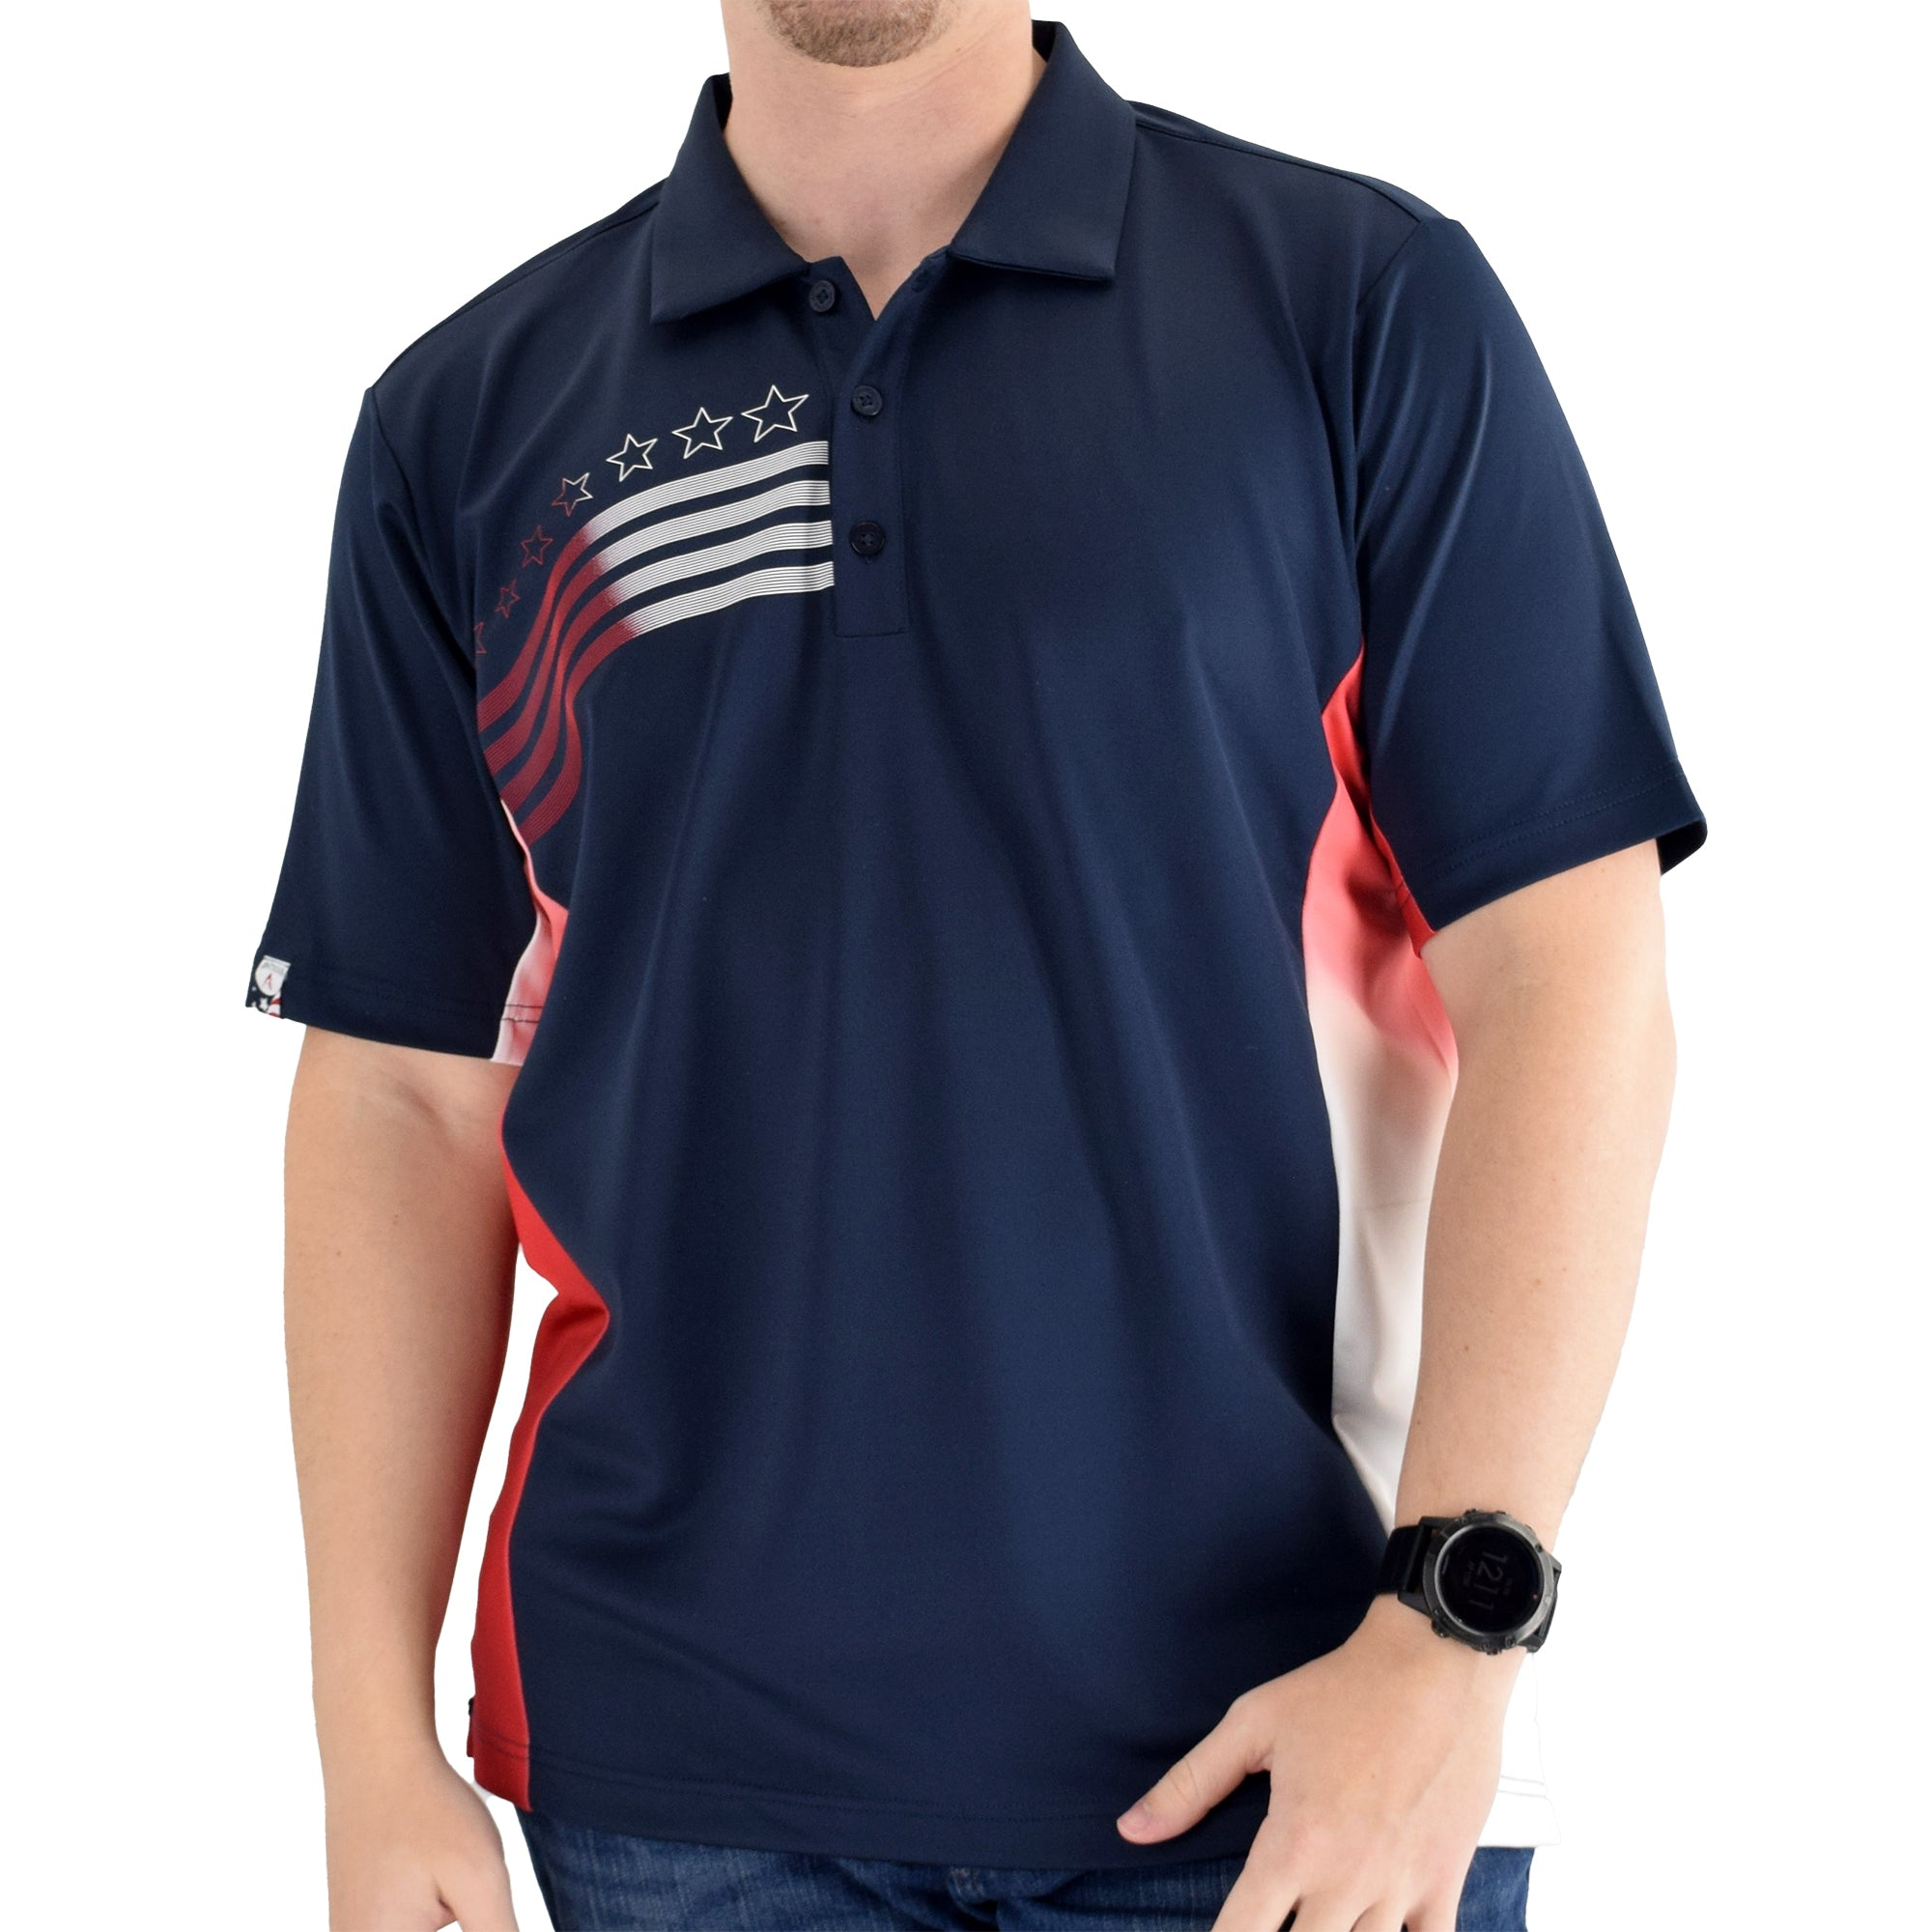 antigua mens liberty classic polo shirt navy - the flag shirt